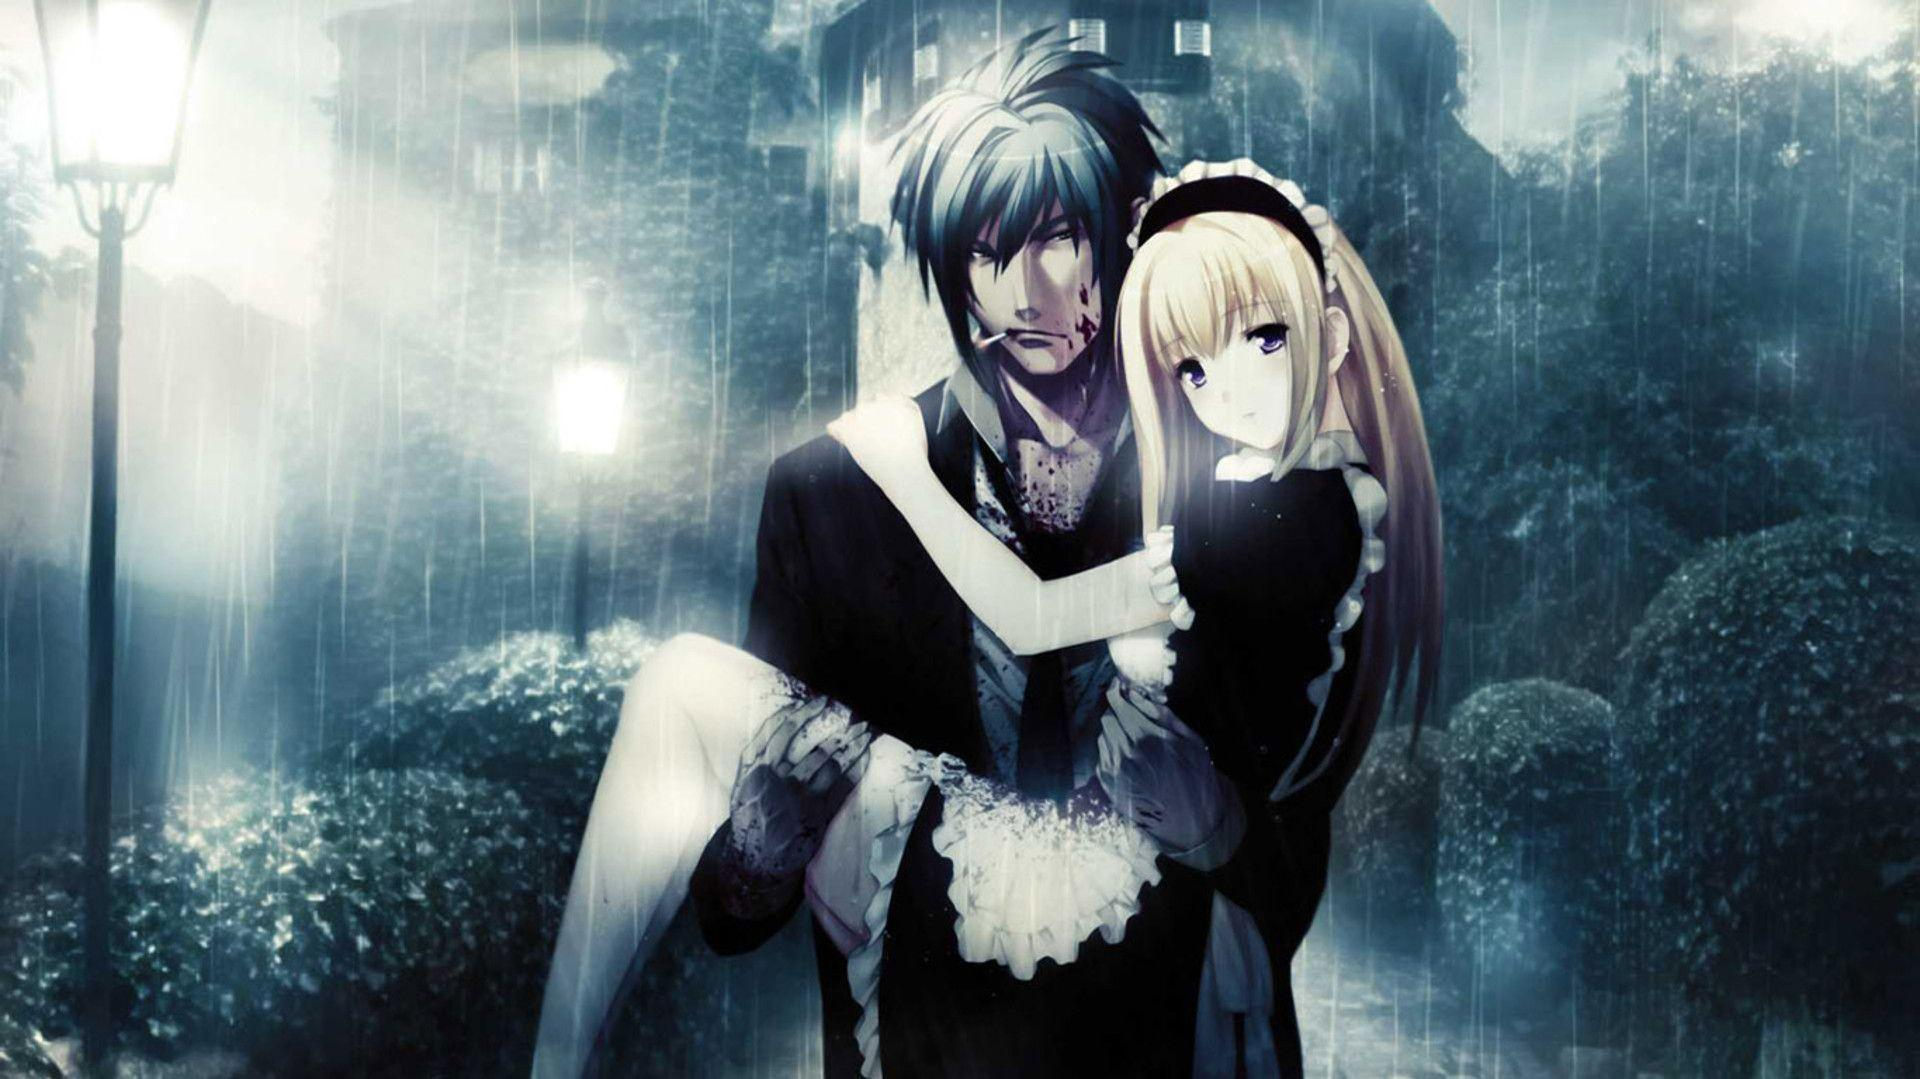 wallpapers anime love - wallpaper cave